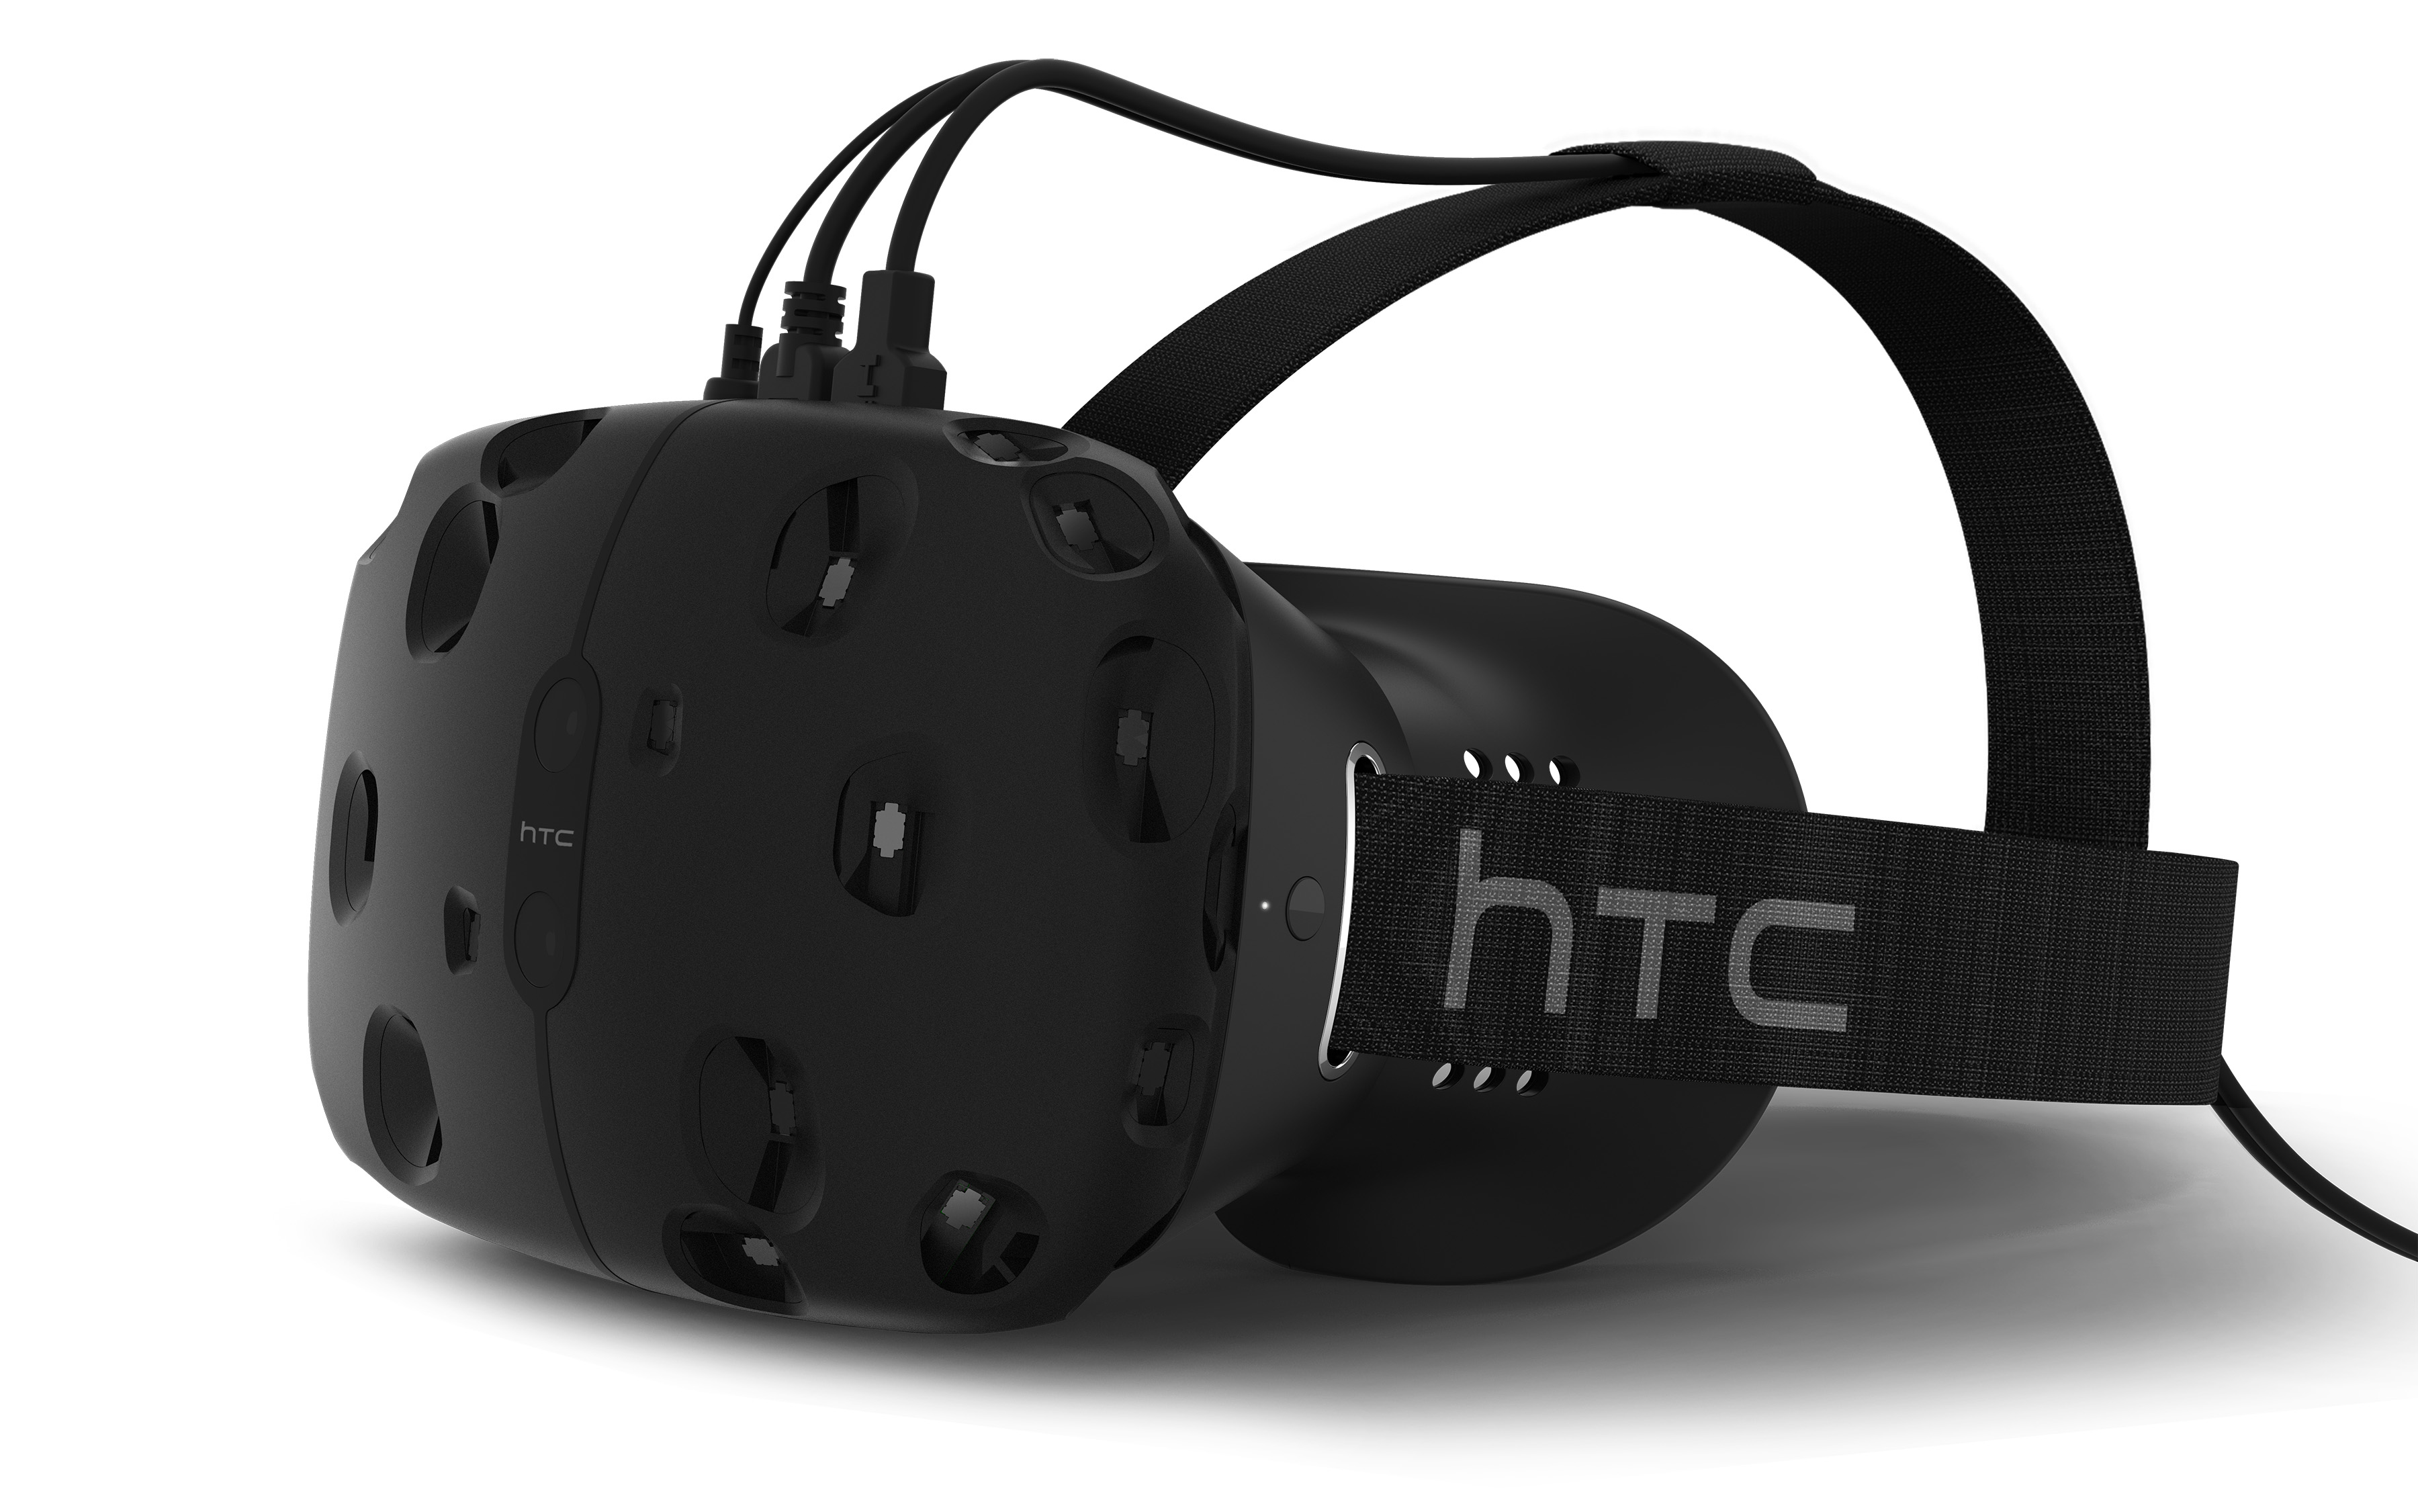 With Valve, HTC Unveils New Virtual Reality Headset 'HTC Vive'